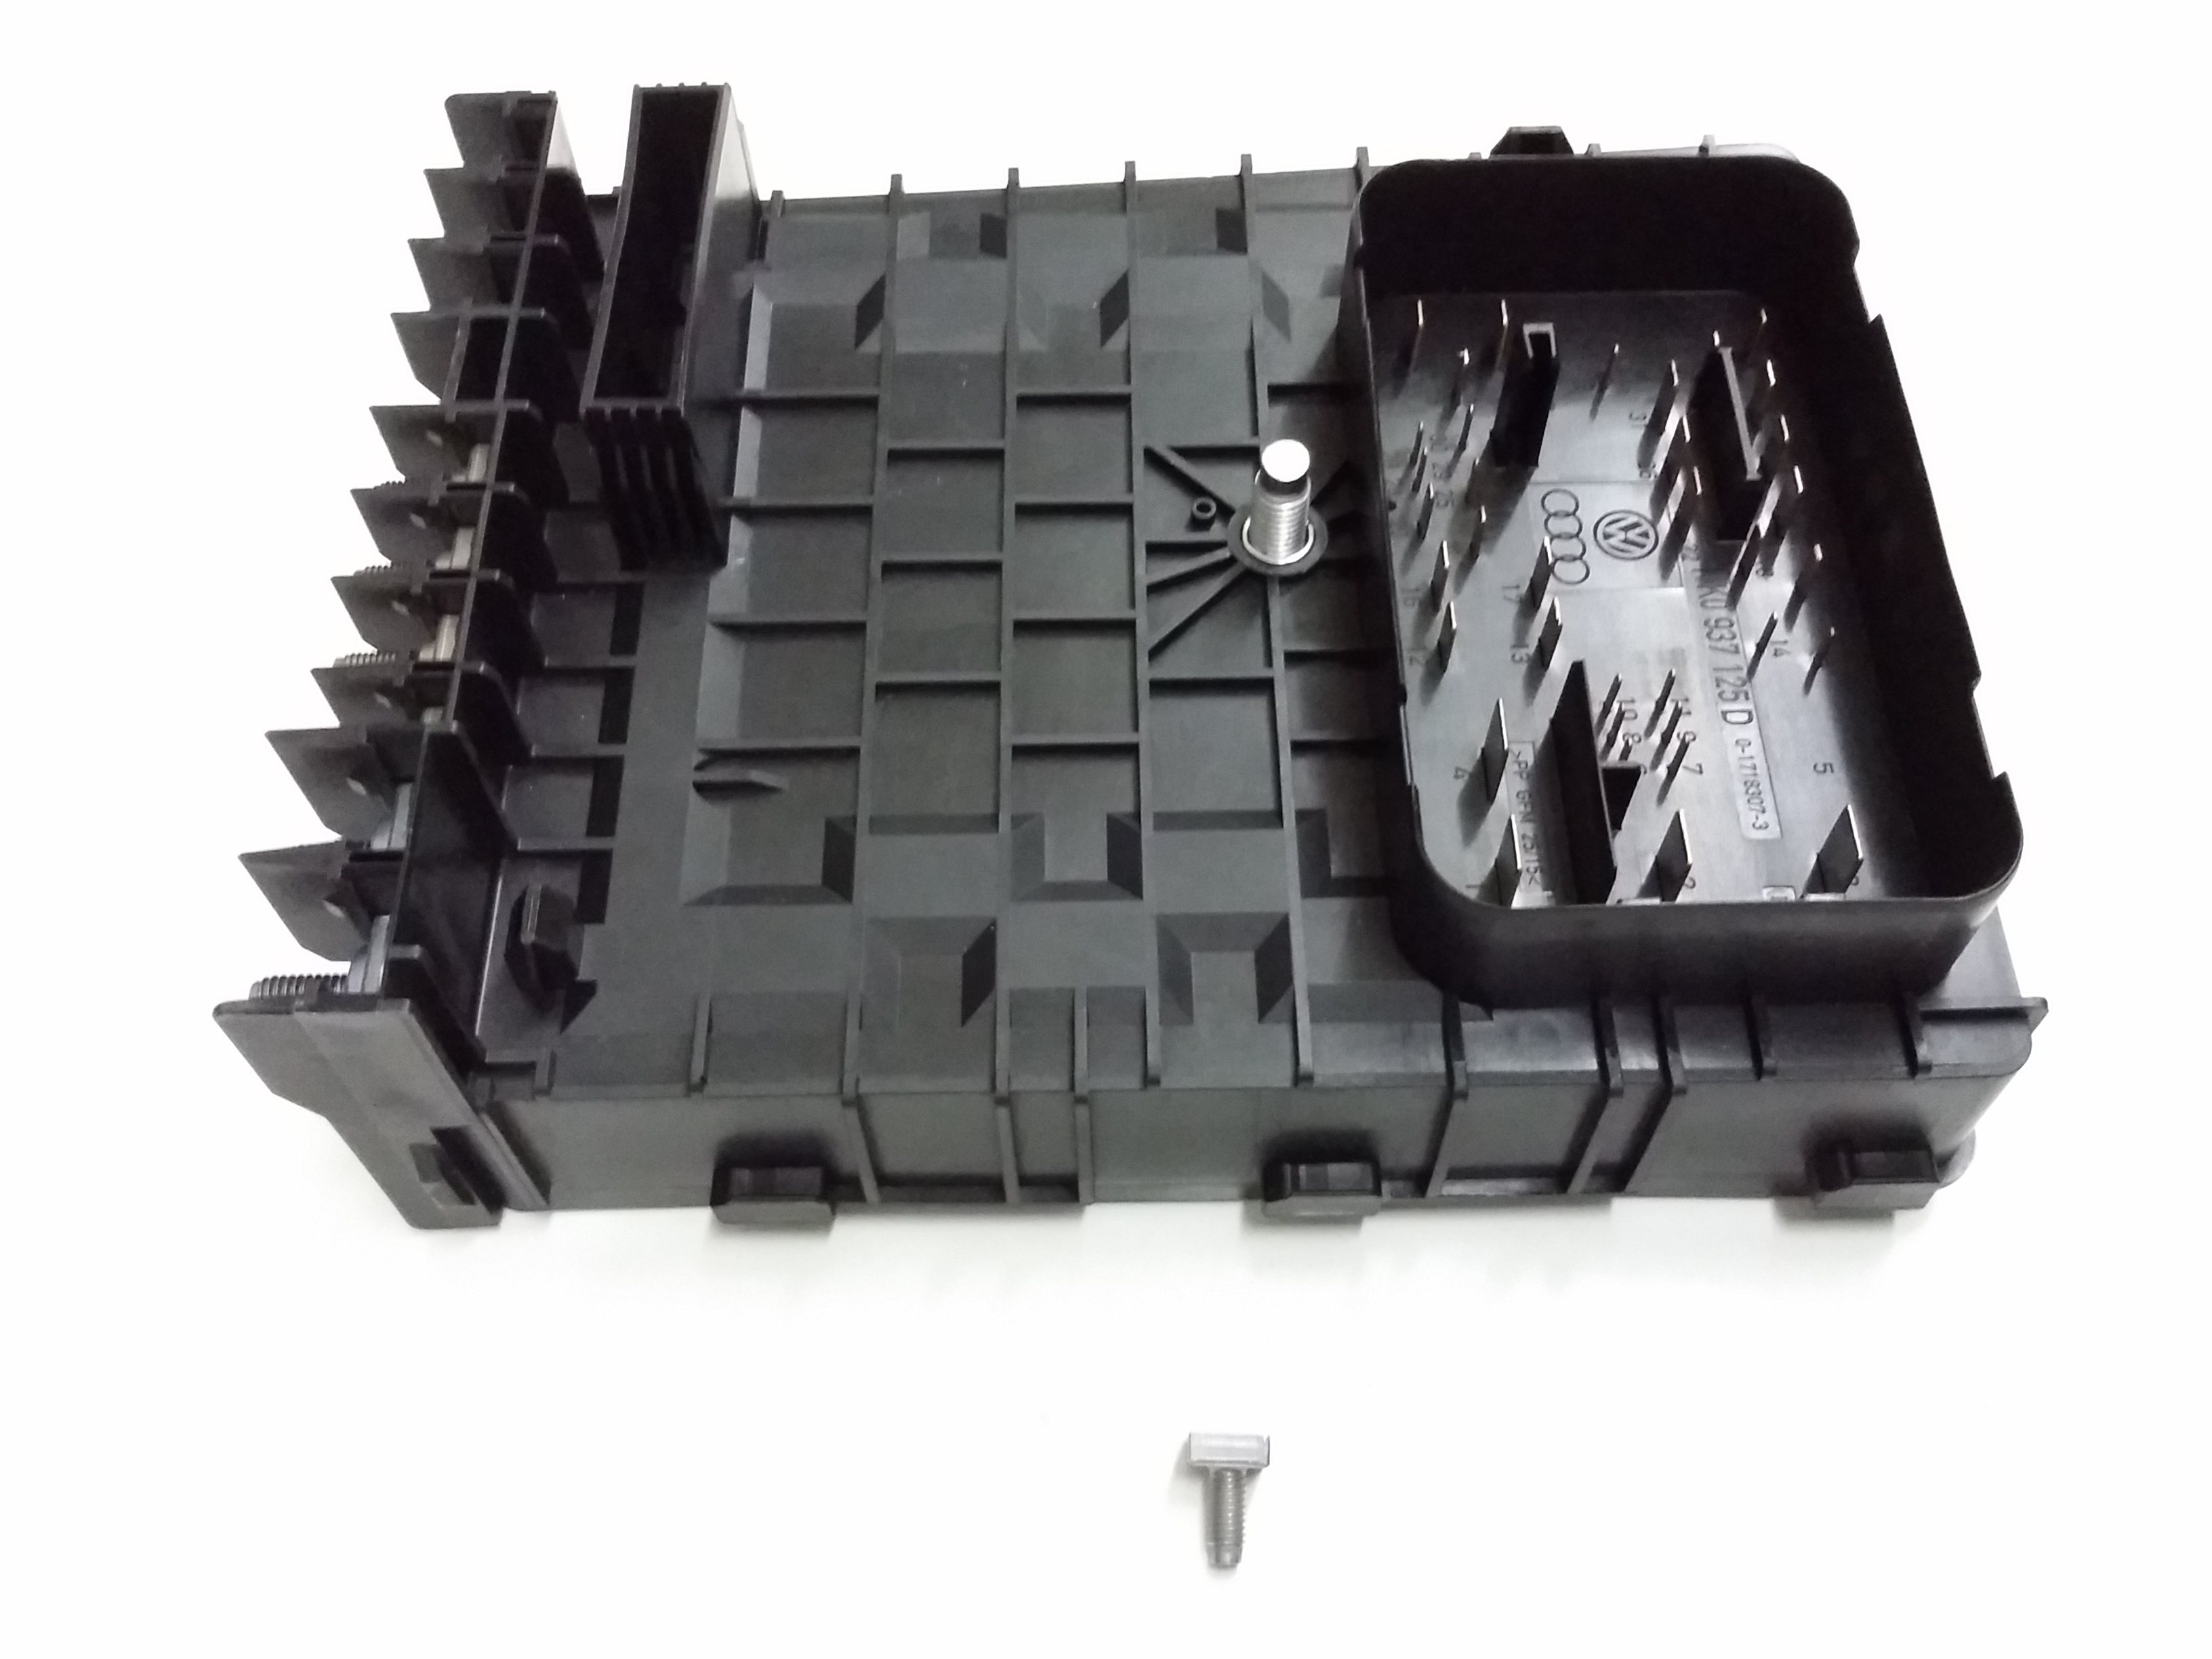 2011 volkswagen tiguan fuse relay and plate box. Black Bedroom Furniture Sets. Home Design Ideas